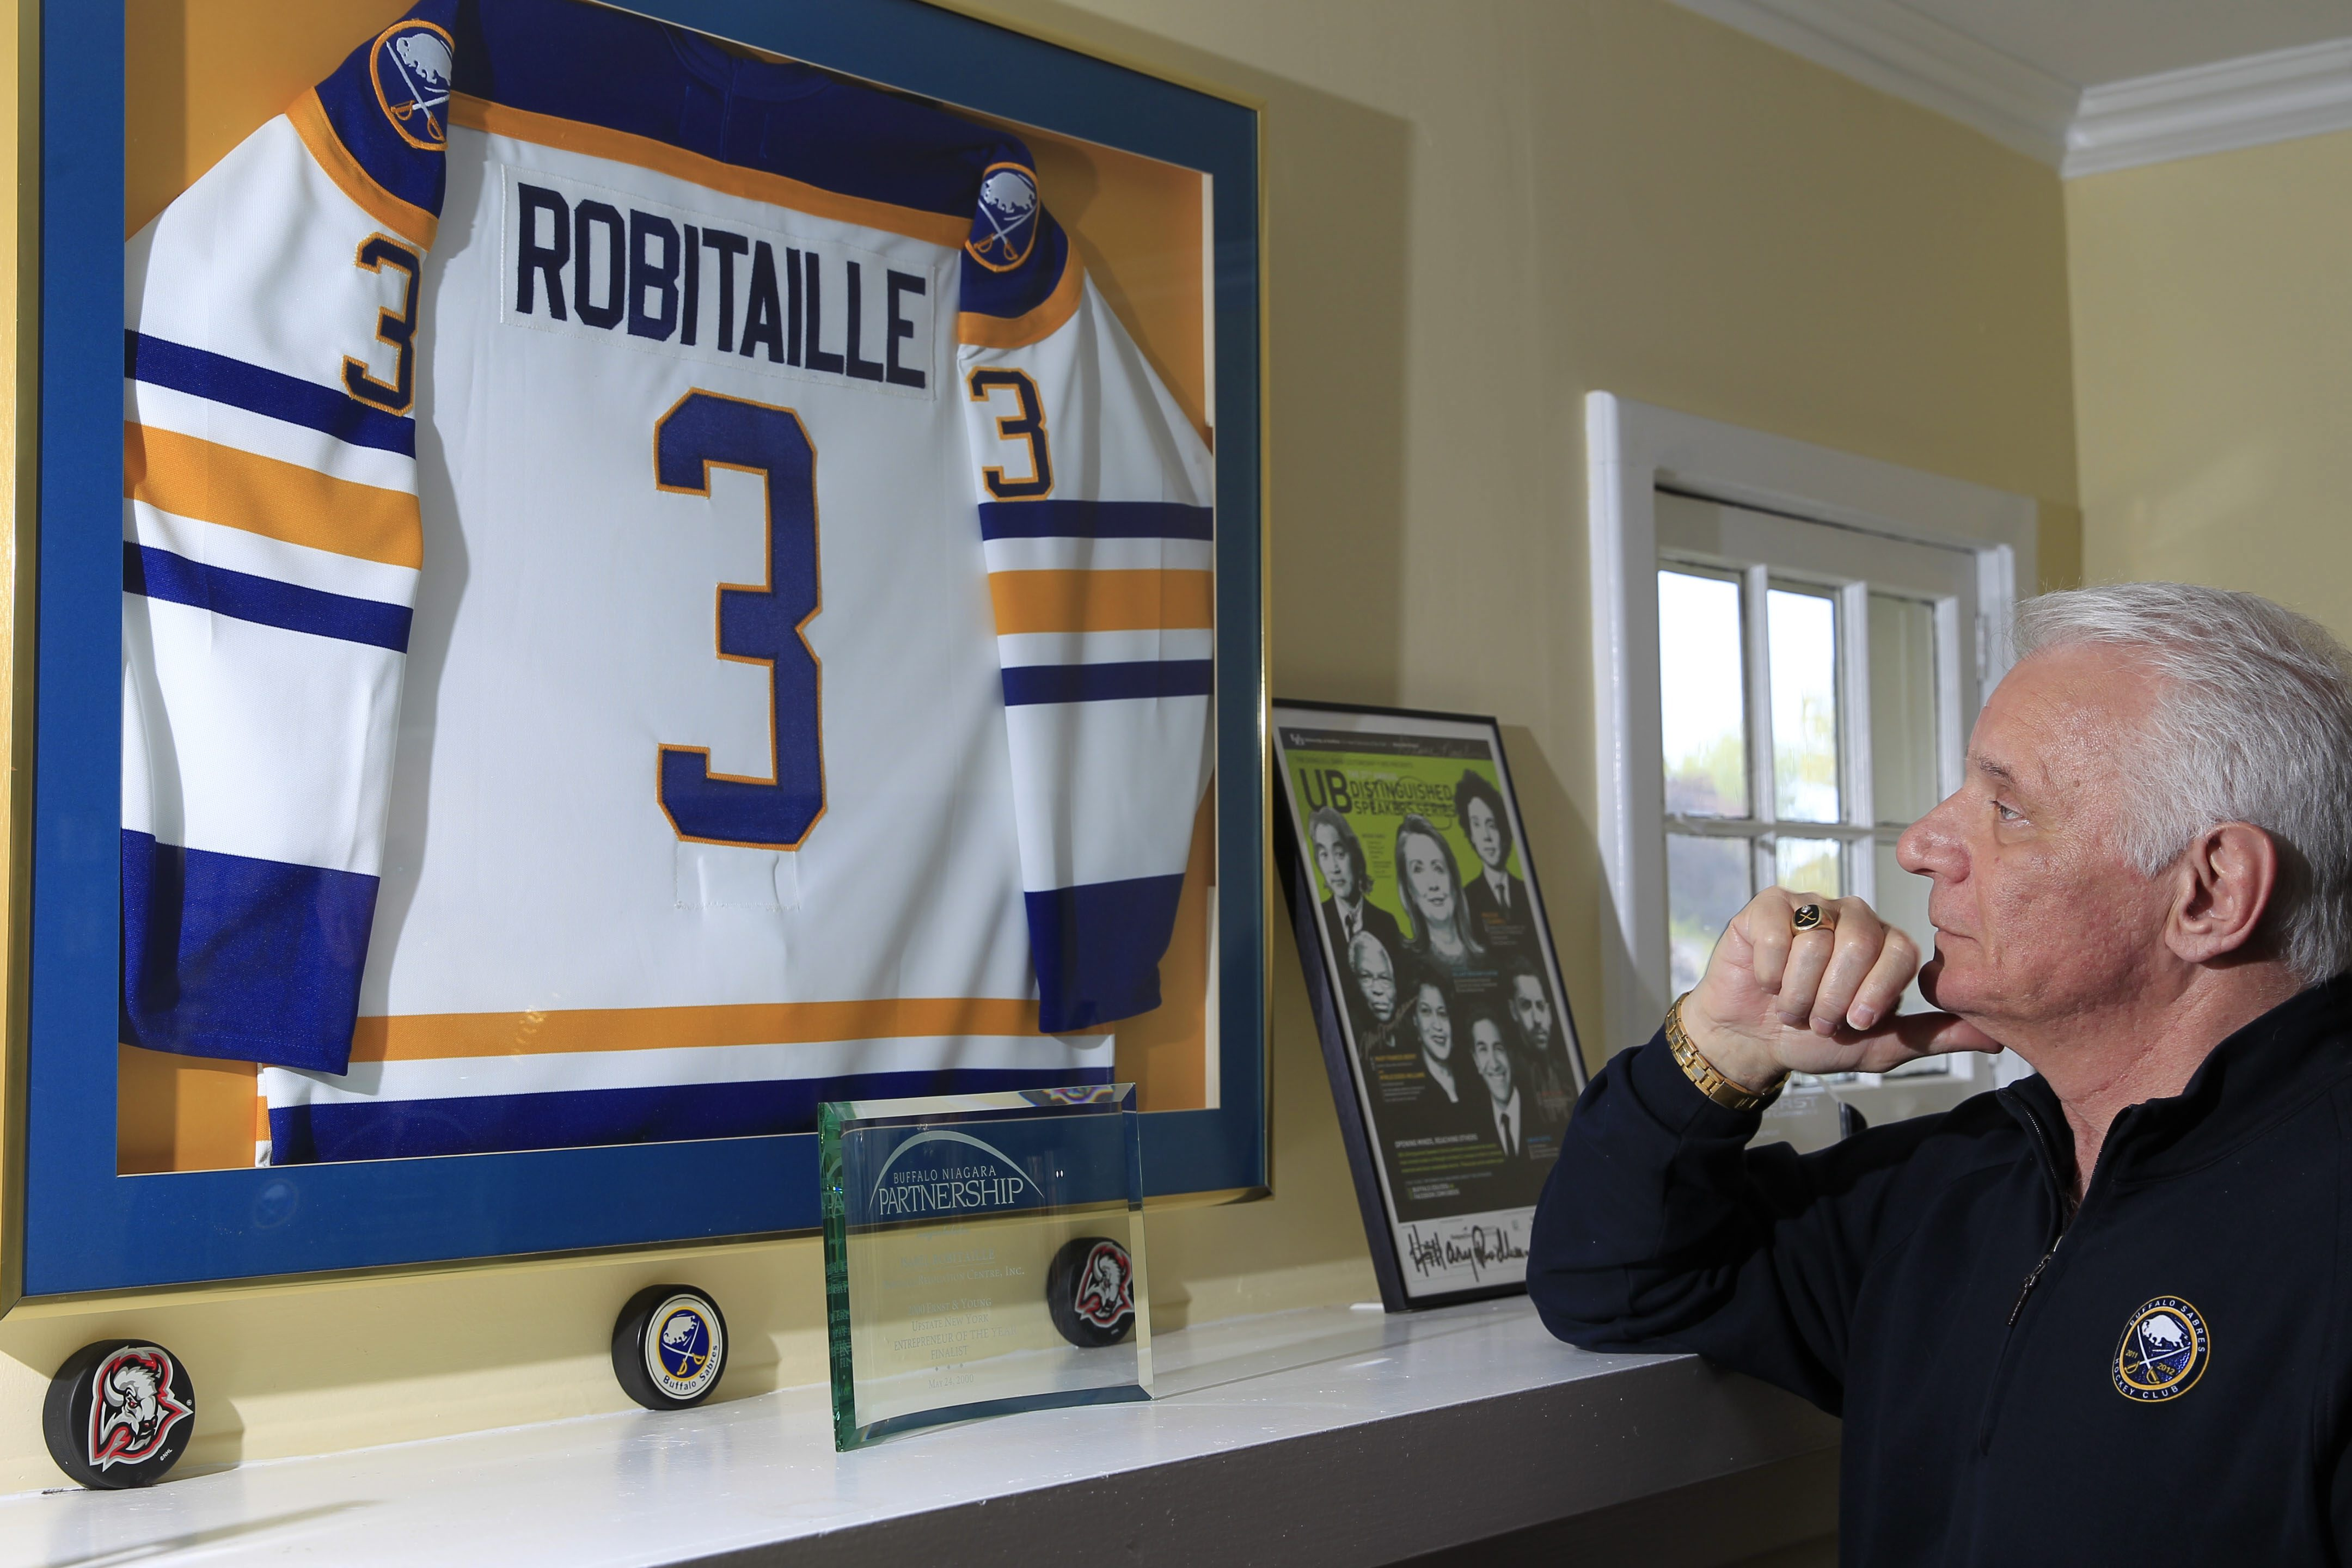 Mike Robitaille's friend Jim Krulicki has joined the former Sabres announcer in the concussion lawsuit filed against the NHL. (Harry Scull Jr./Buffalo News file photo)